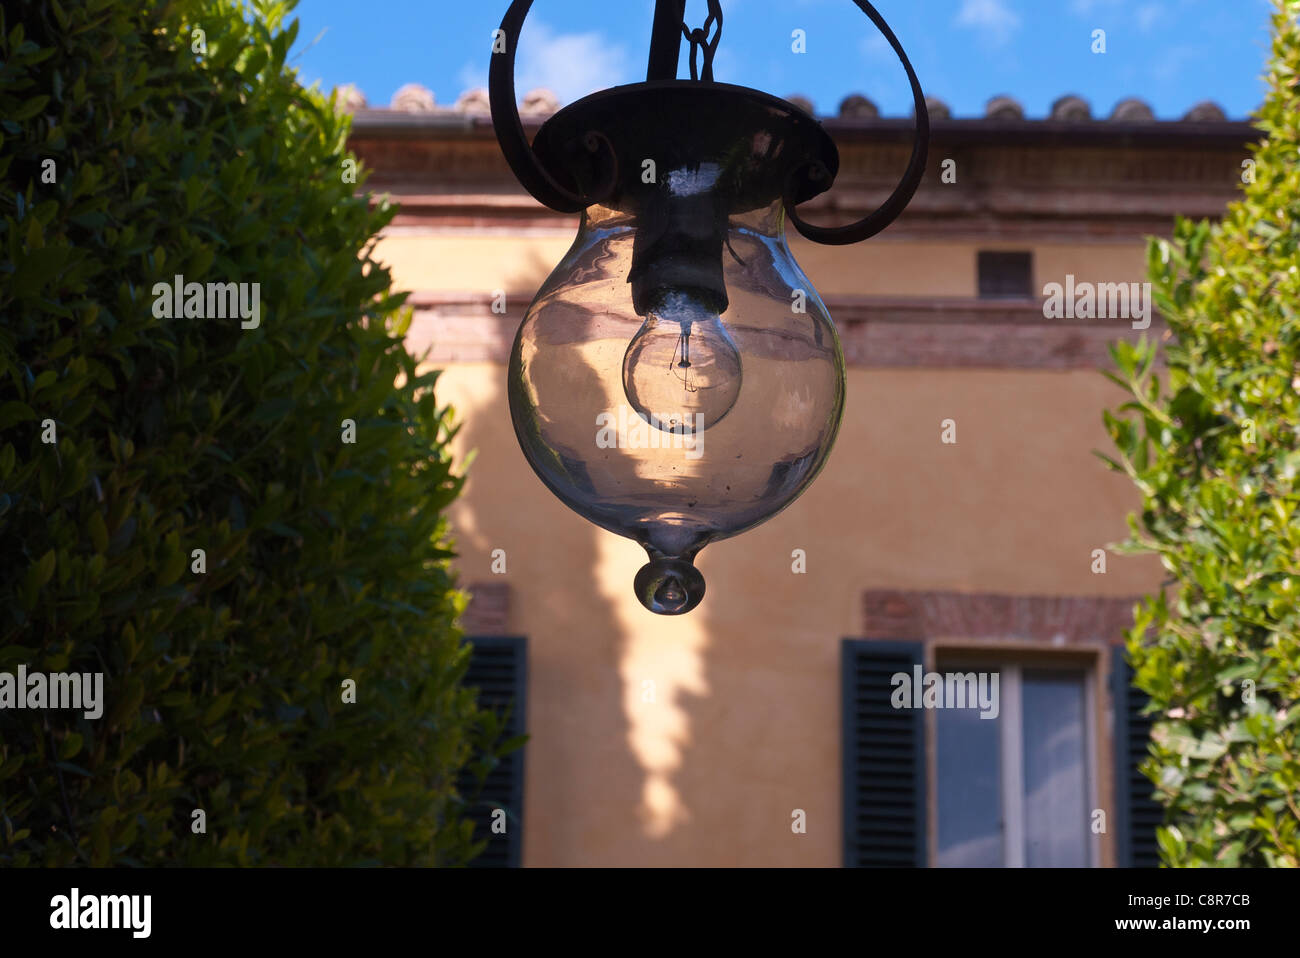 A close-up of one of the outdoor light fixtures at the Tuscany estate of La Foce in La Foce, Italy. - Stock Image